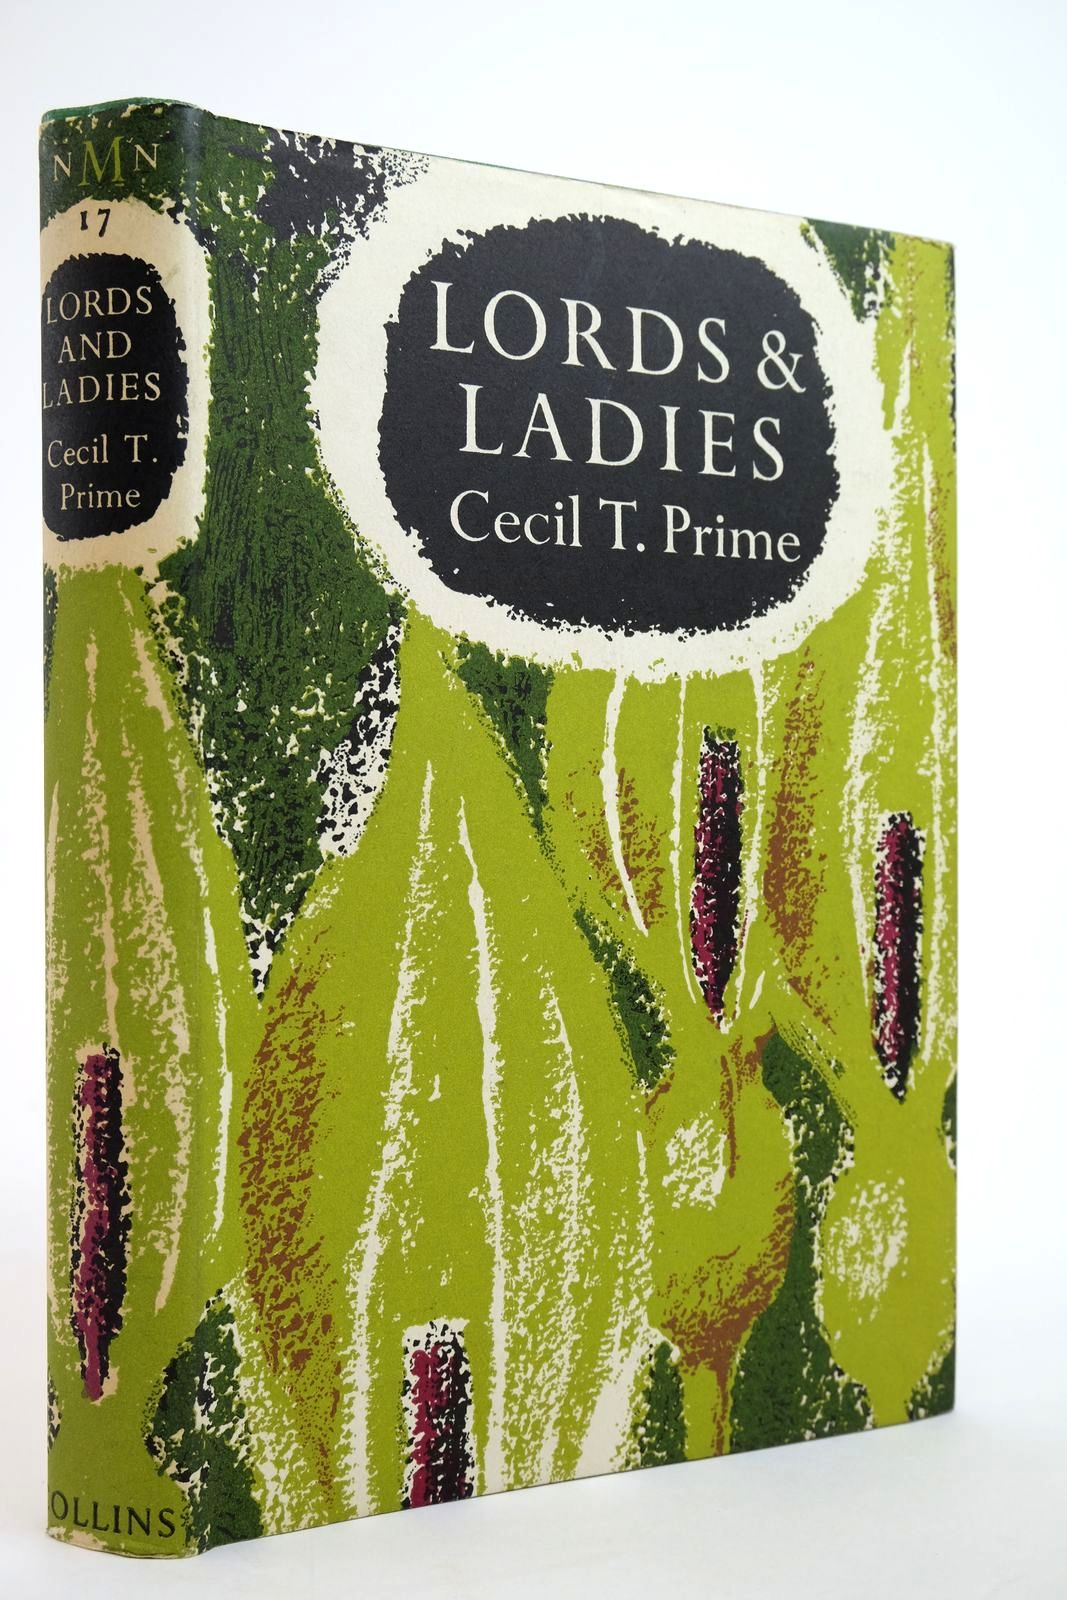 Photo of LORDS & LADIES (NMN 17) written by Prime, C.T. illustrated by Jones, Robert J. published by Collins (STOCK CODE: 2134984)  for sale by Stella & Rose's Books